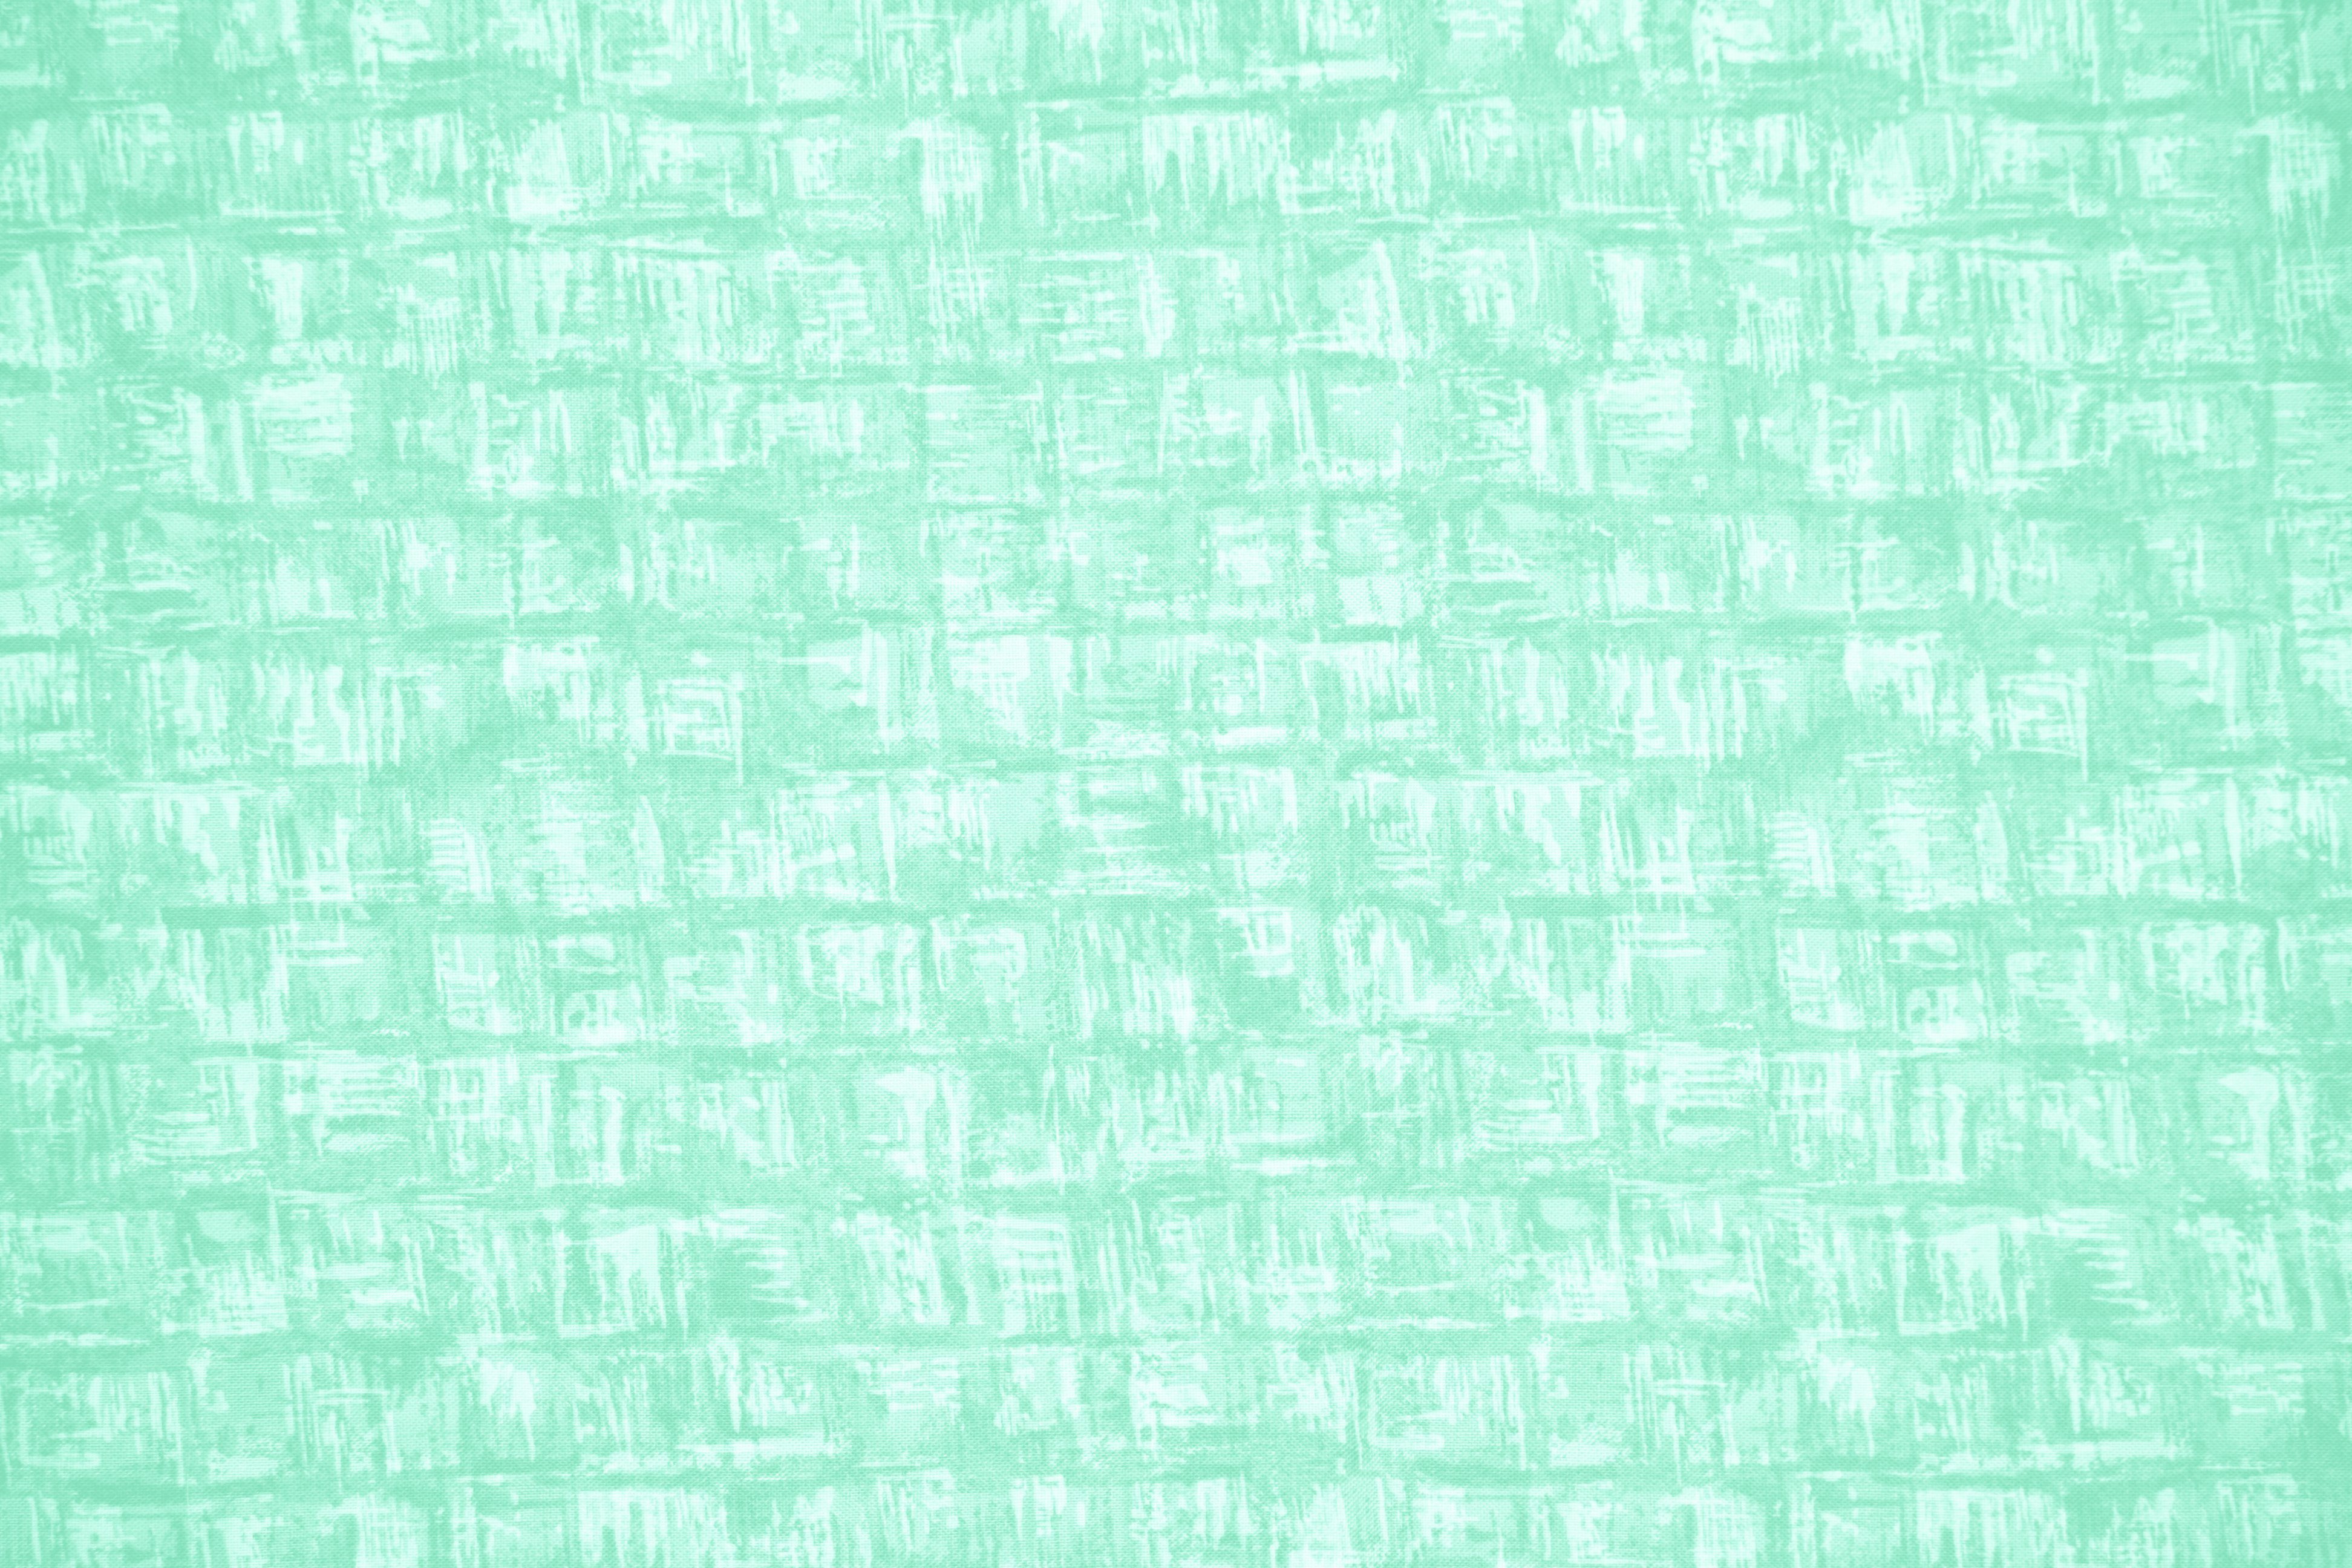 Mint Green Abstract Squares Fabric Texture Picture Free